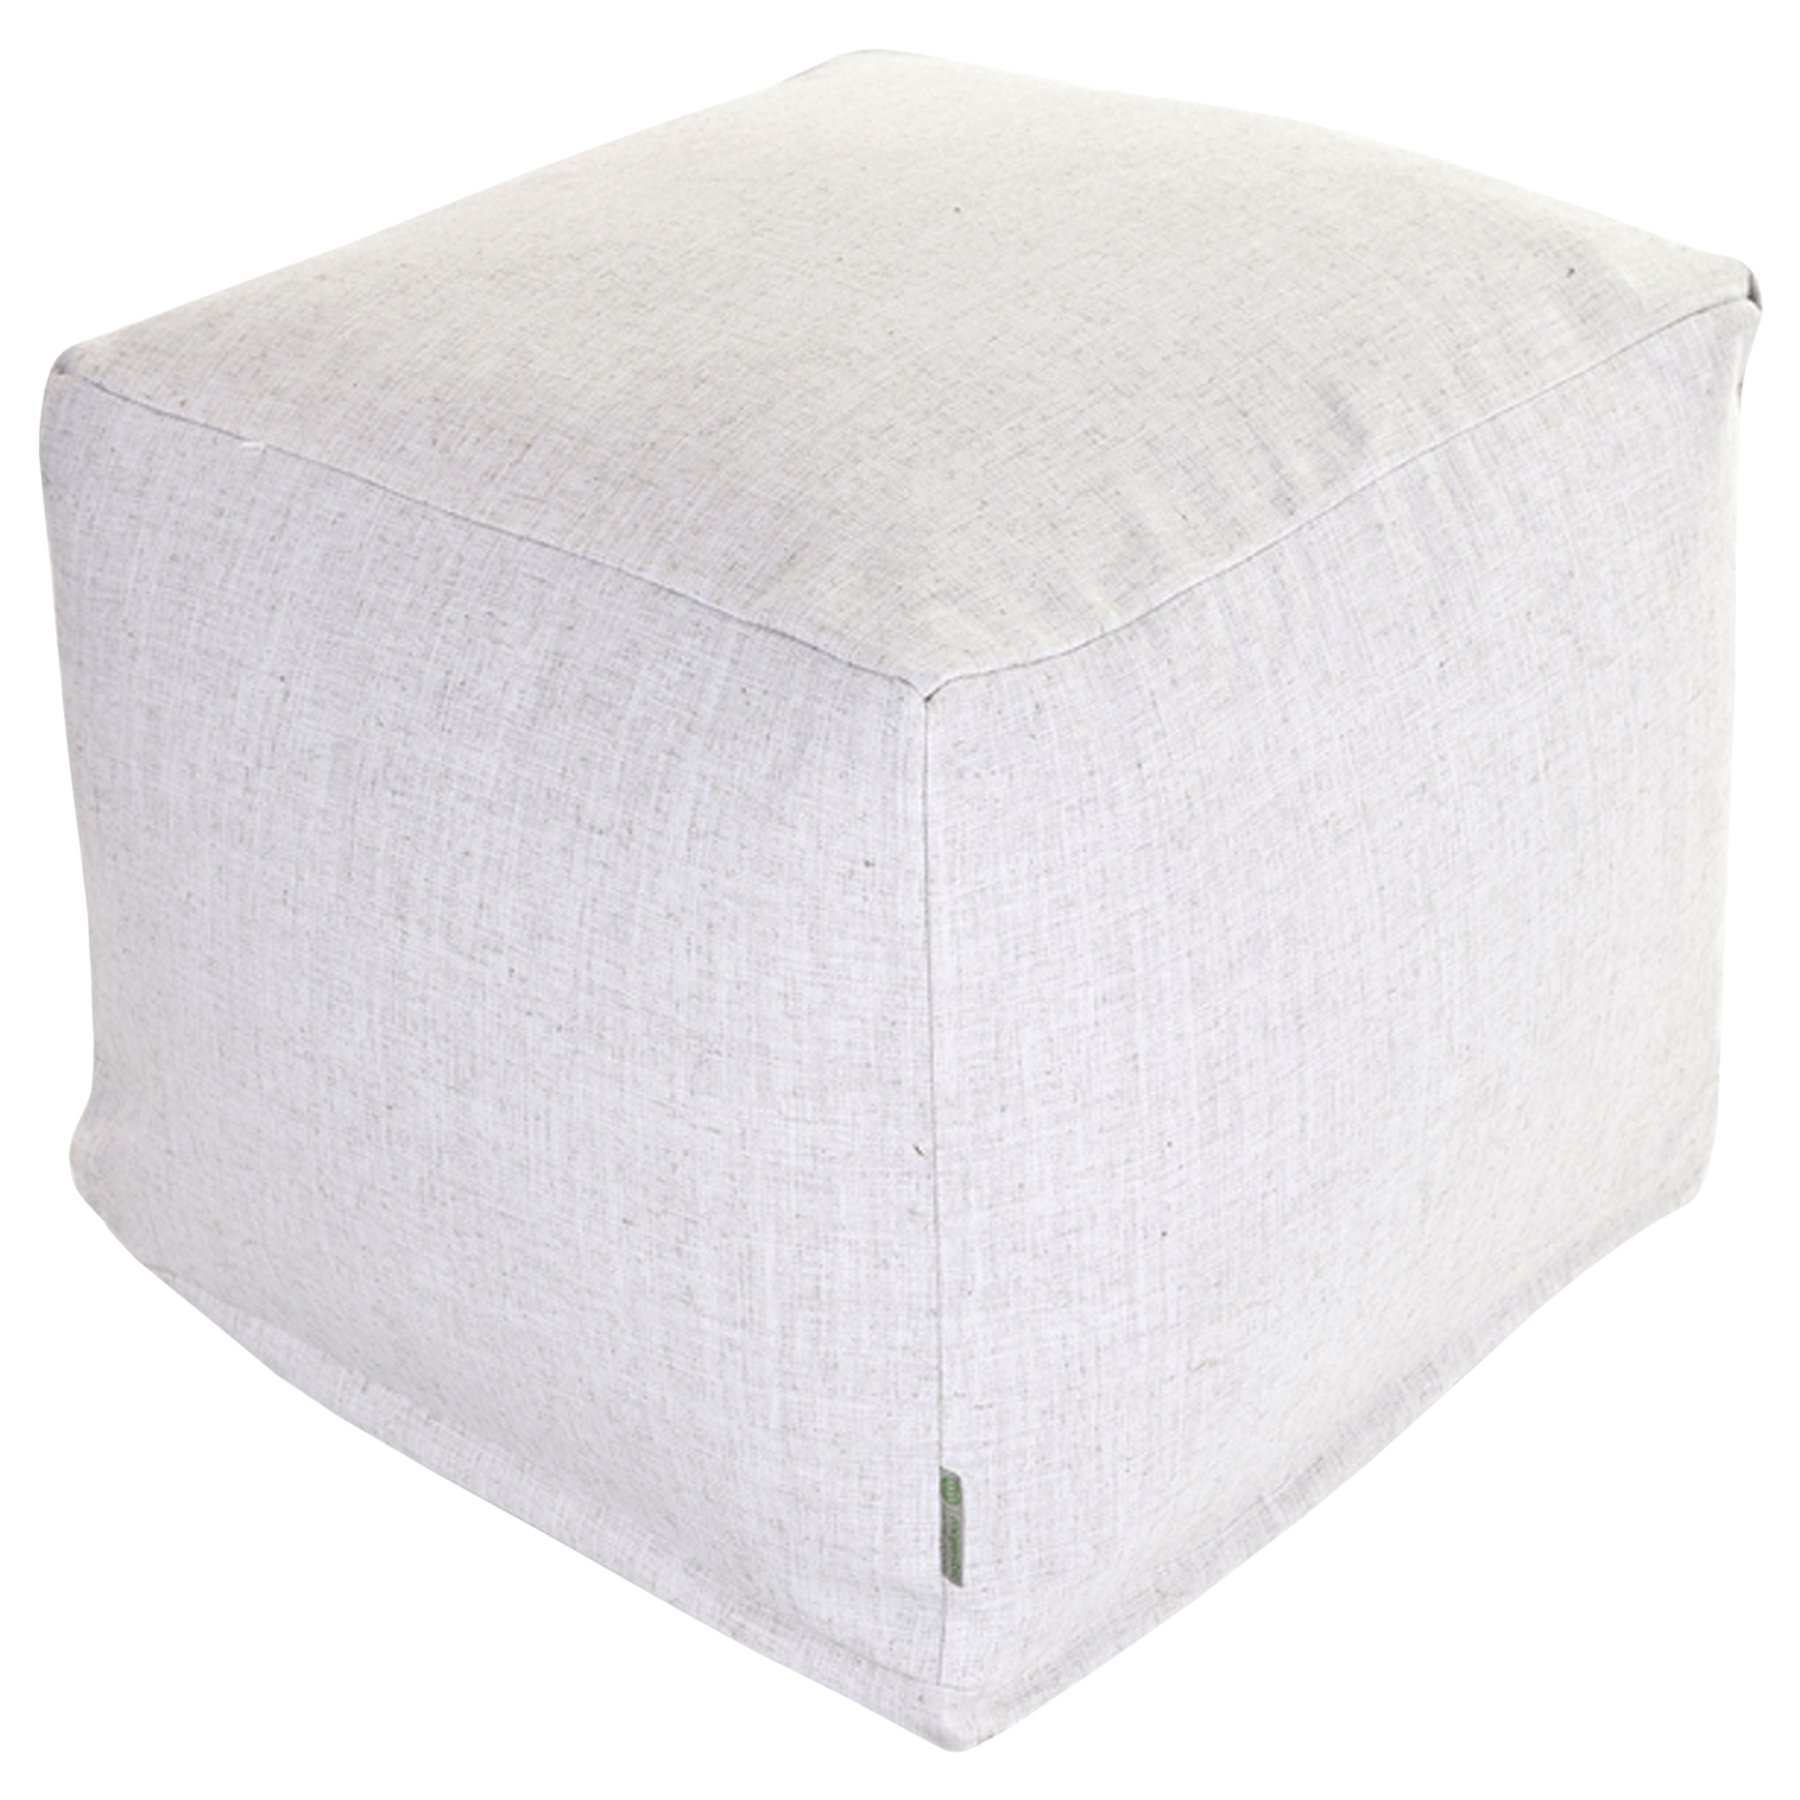 Majestic Home Goods Magnolia Wales Indoor Bean Bag Ottoman Pouf Cube 17'' L x 17'' W x 17'' H by Majestic Home Goods